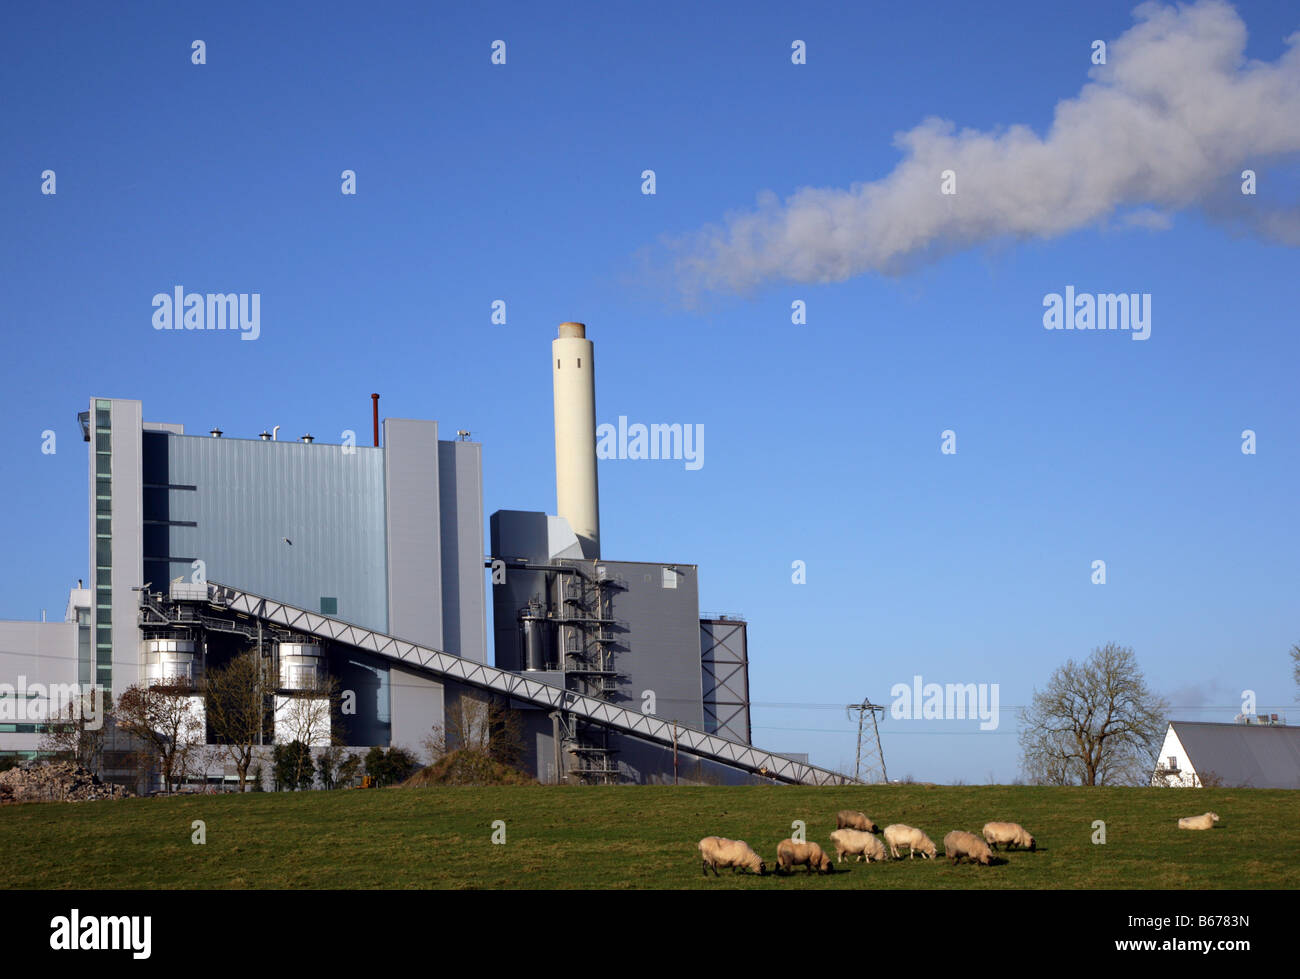 Lough Ree Power Station Lough Ree County Roscommon Ireland - Stock Image